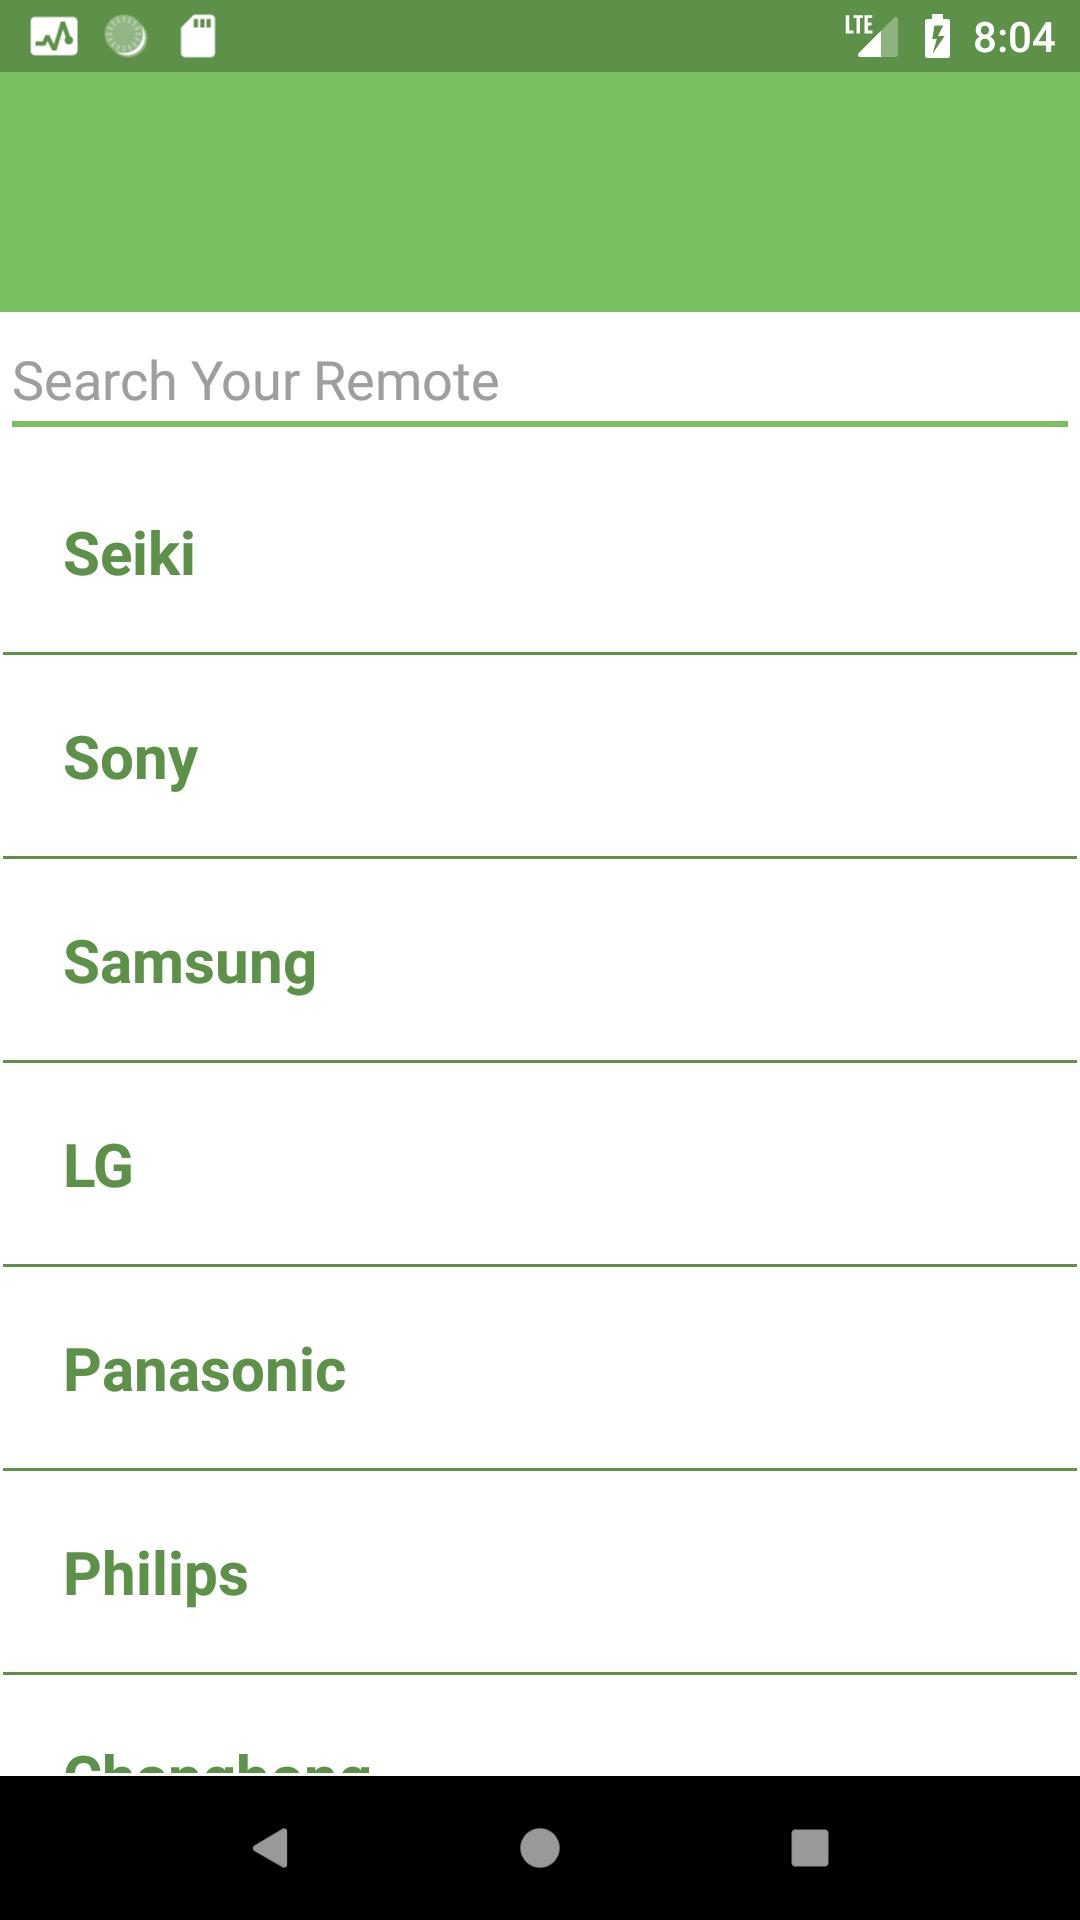 Seiki Tv Remote For Android Apk Download